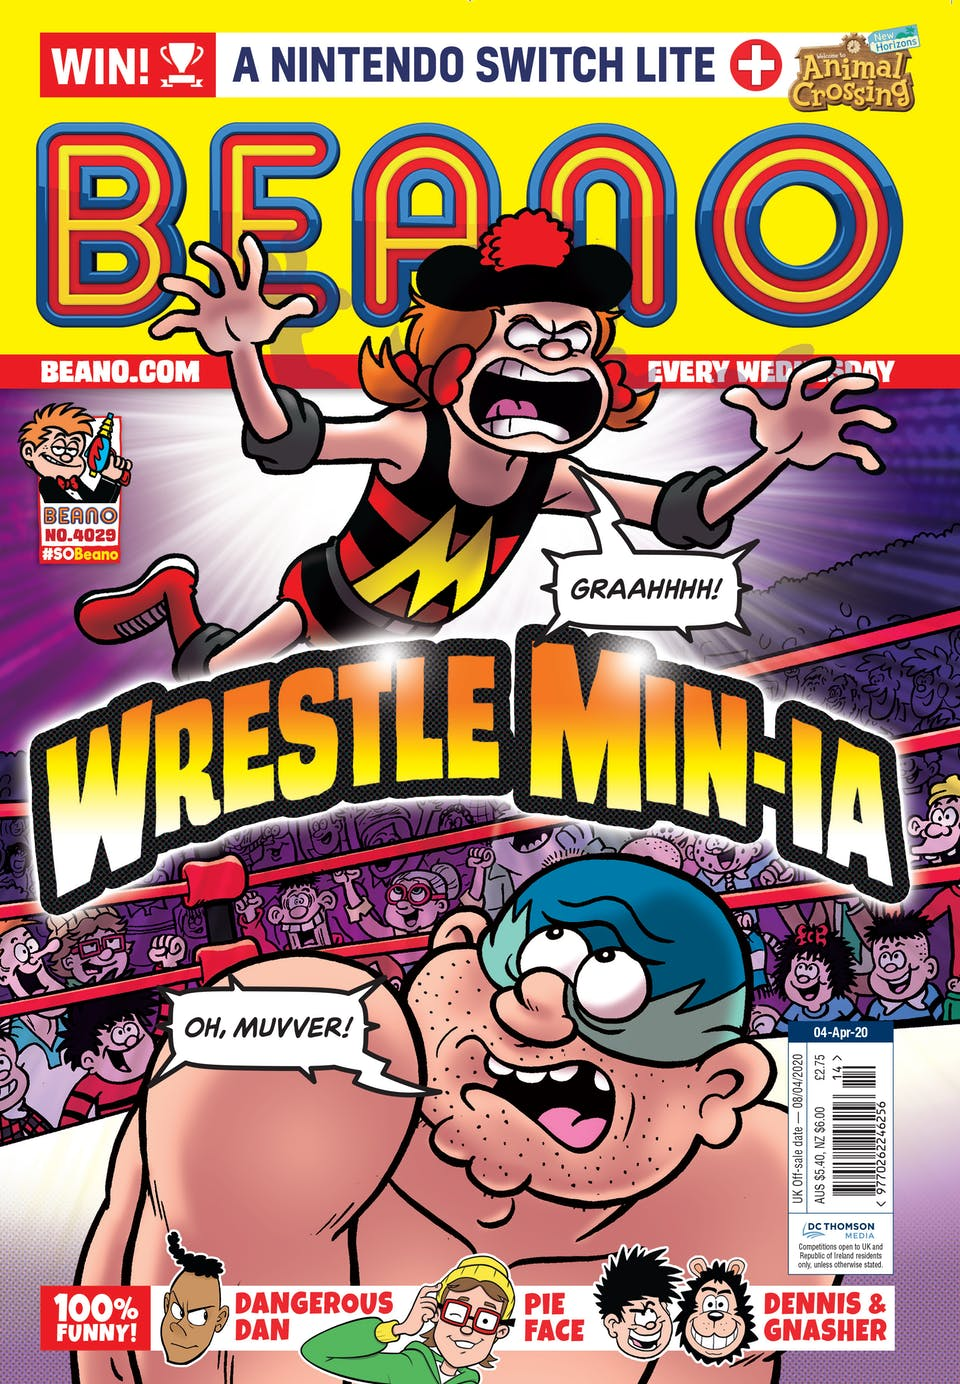 Inside Beano 4029 -  Watch out! Min's in the ring!